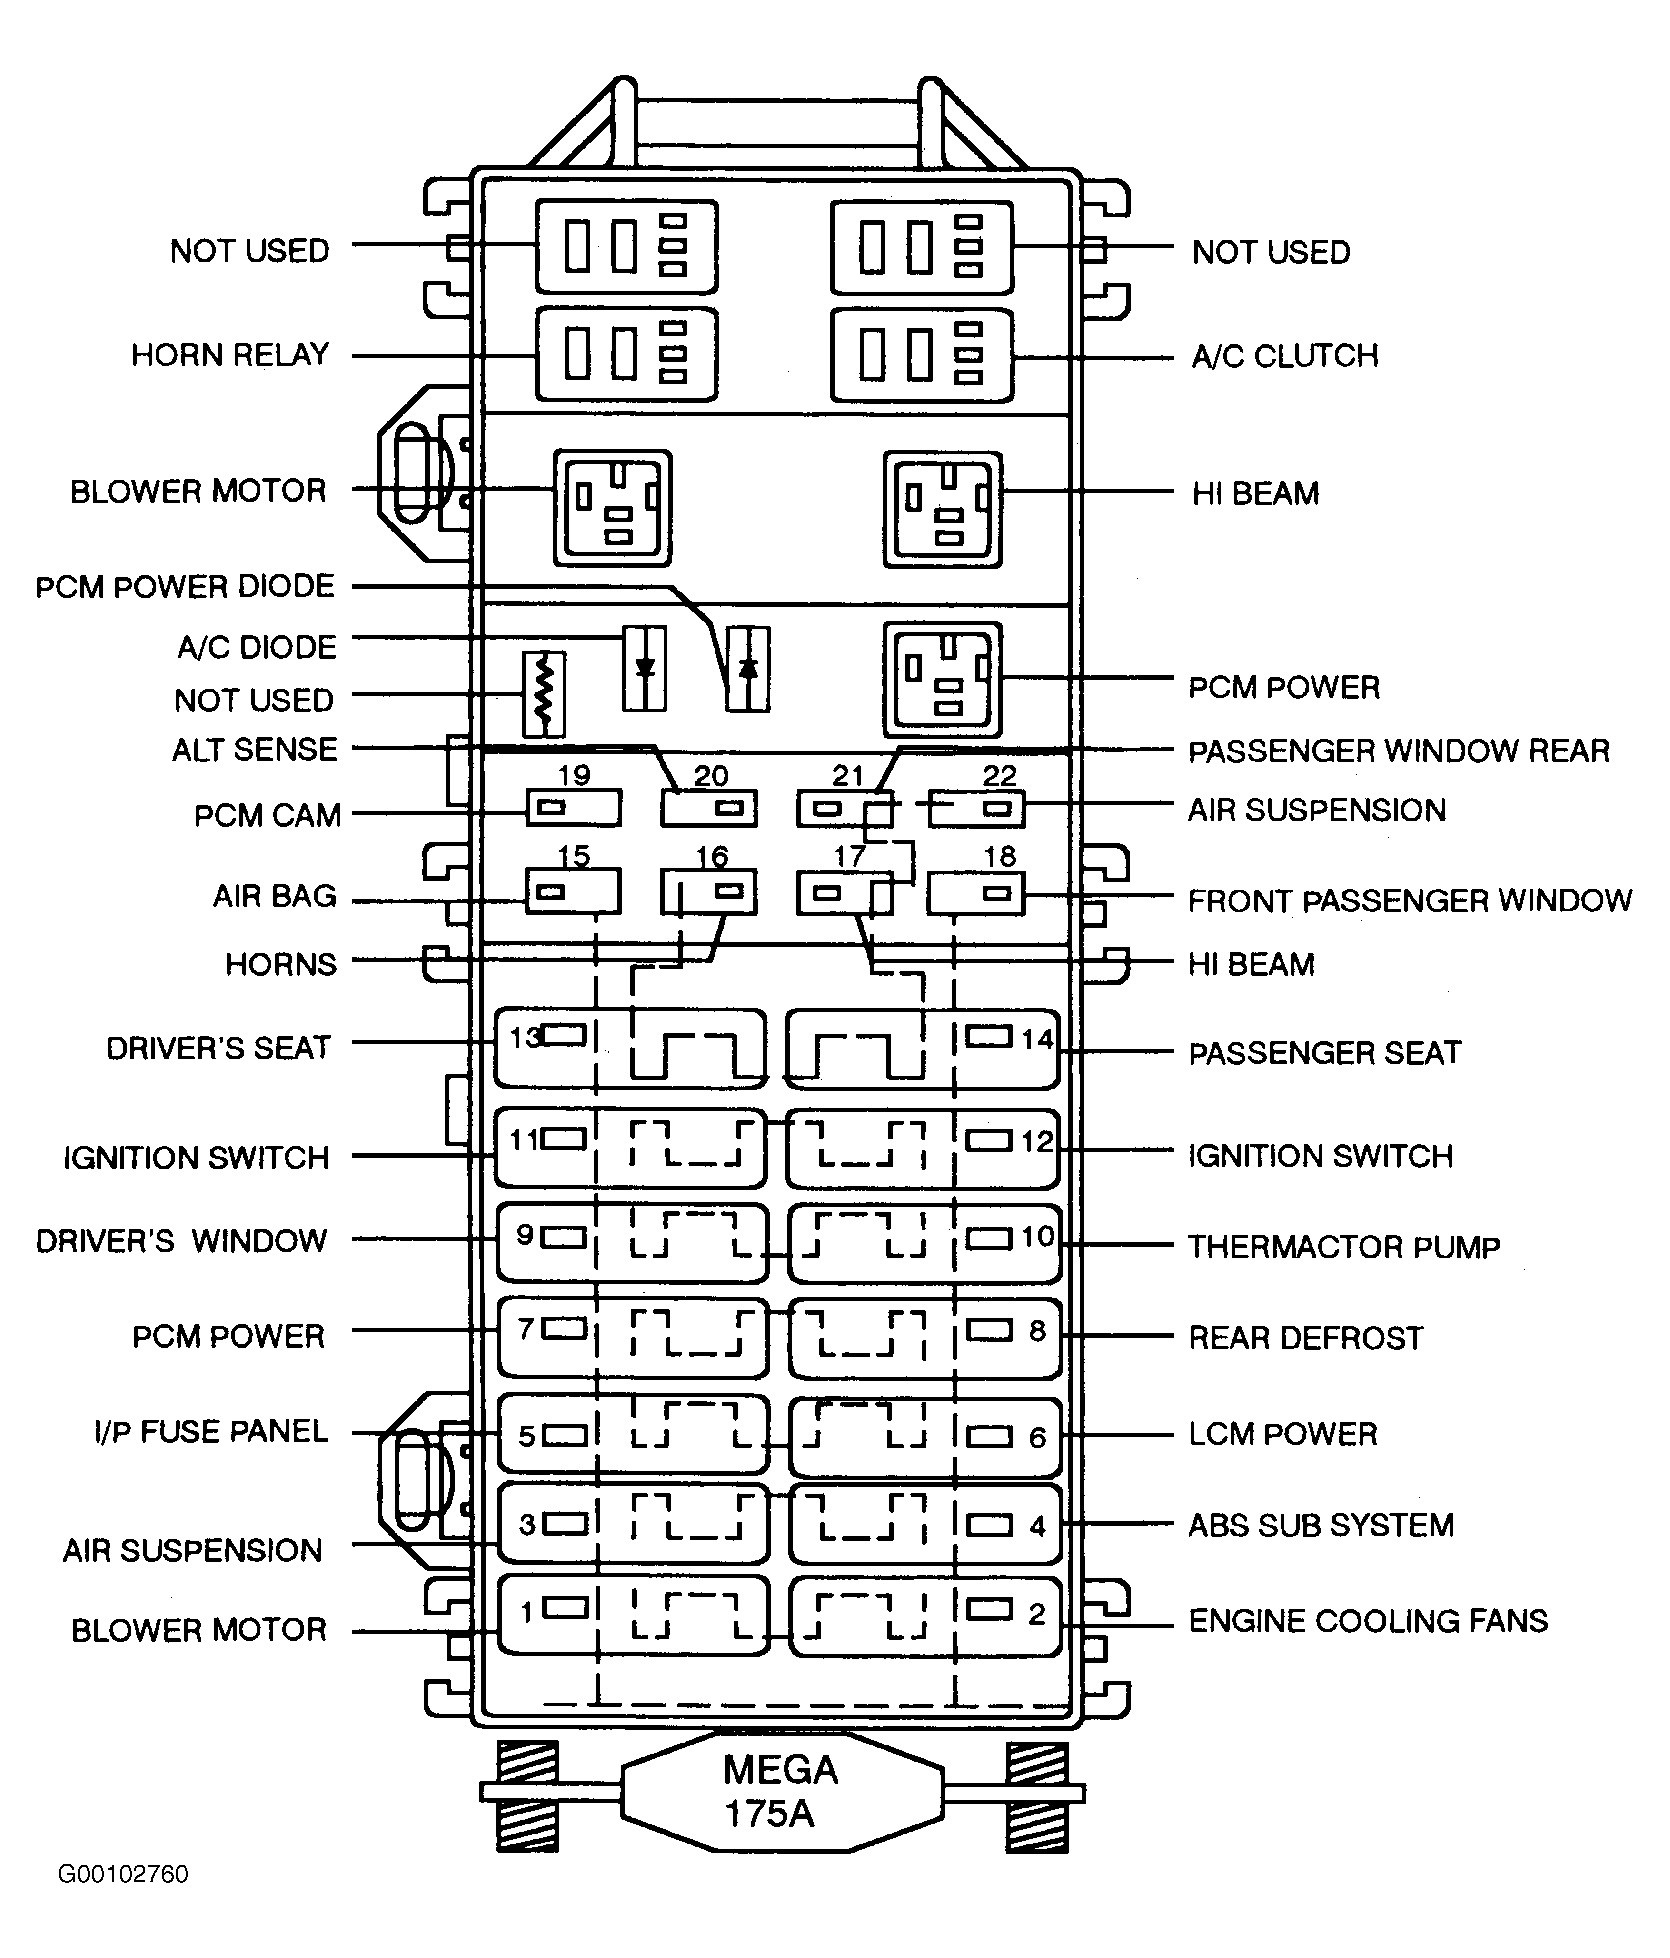 1984 Lincoln Town Car Fuse Panel Diagram | Wiring Library